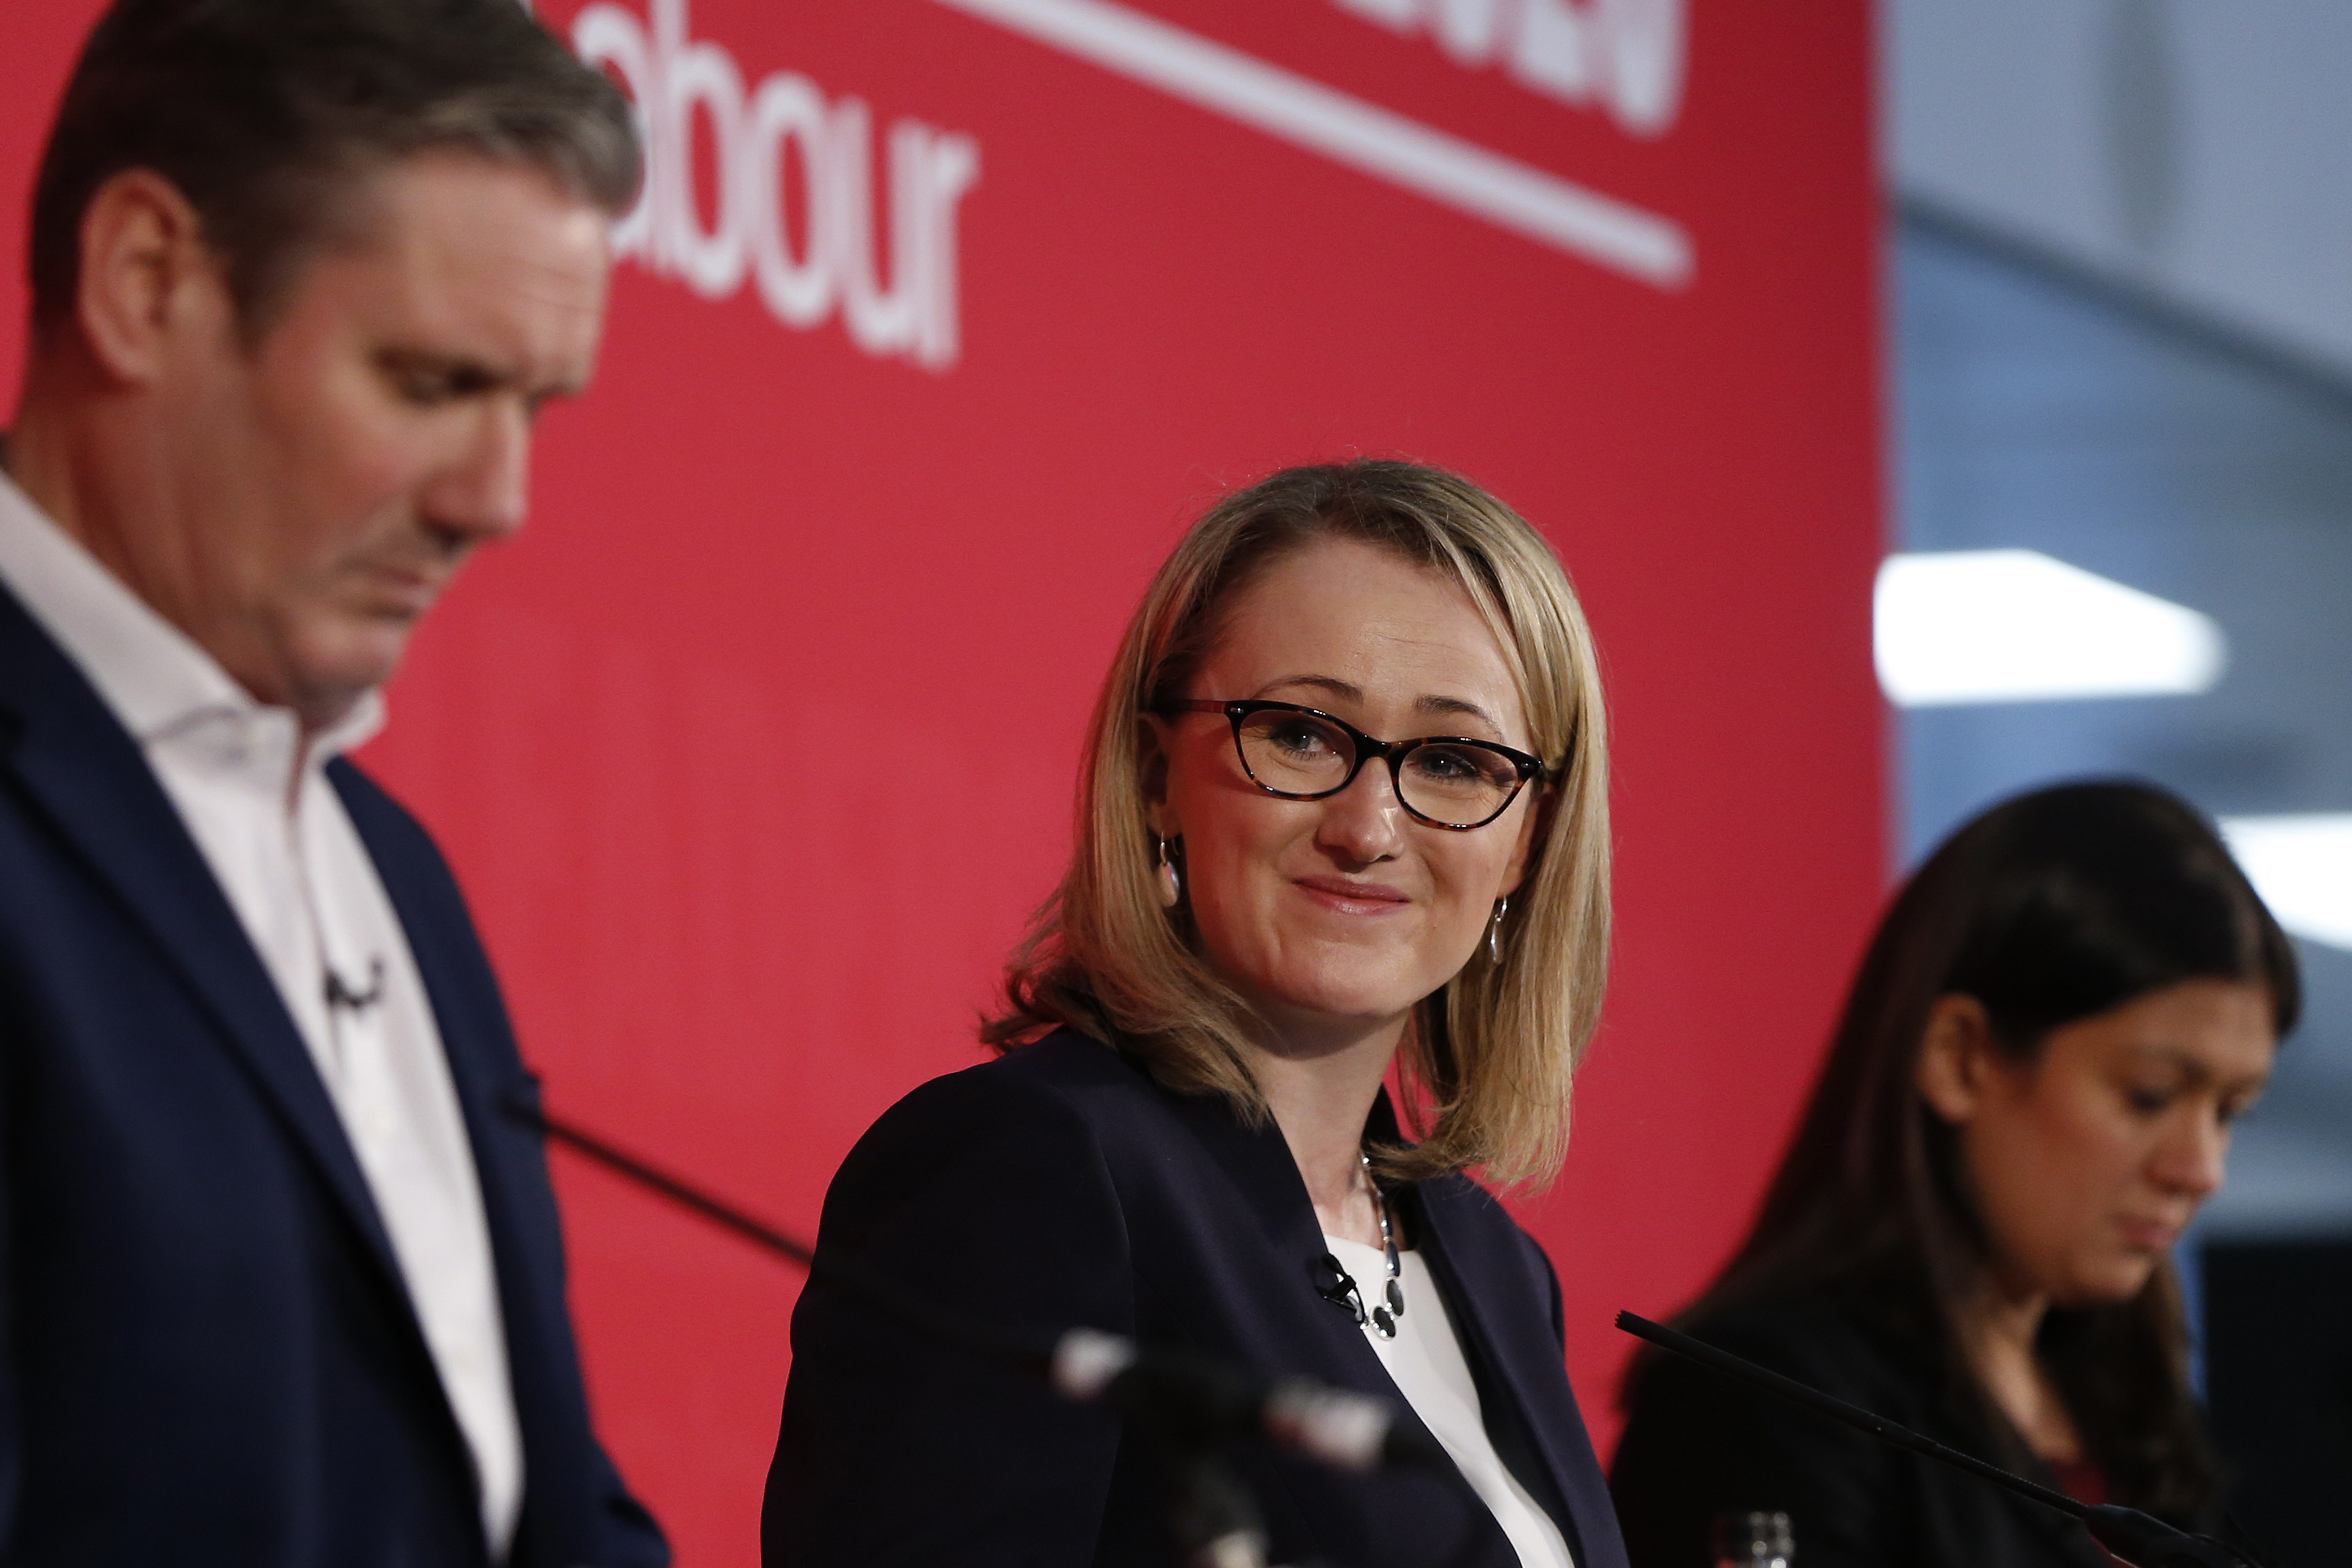 LONDON, ENGLAND - FEBRUARY 16: Sir Keir Starmer, Rebecca Long-Bailey and Lisa Nandy speaking at a hustings event for Labour Leader and Deputy Leader, hosted by the Co-operative Party, at the Business Design Centre on February 16, 2020 in London, England. Sir Keir Starmer, Rebecca Long-Bailey and Lisa Nandy are vying to replace Labour leader Jeremy Corbyn, who offered to step down following his party's loss in the December 2019 general election. (Photo by Hollie Adams/Getty Images)